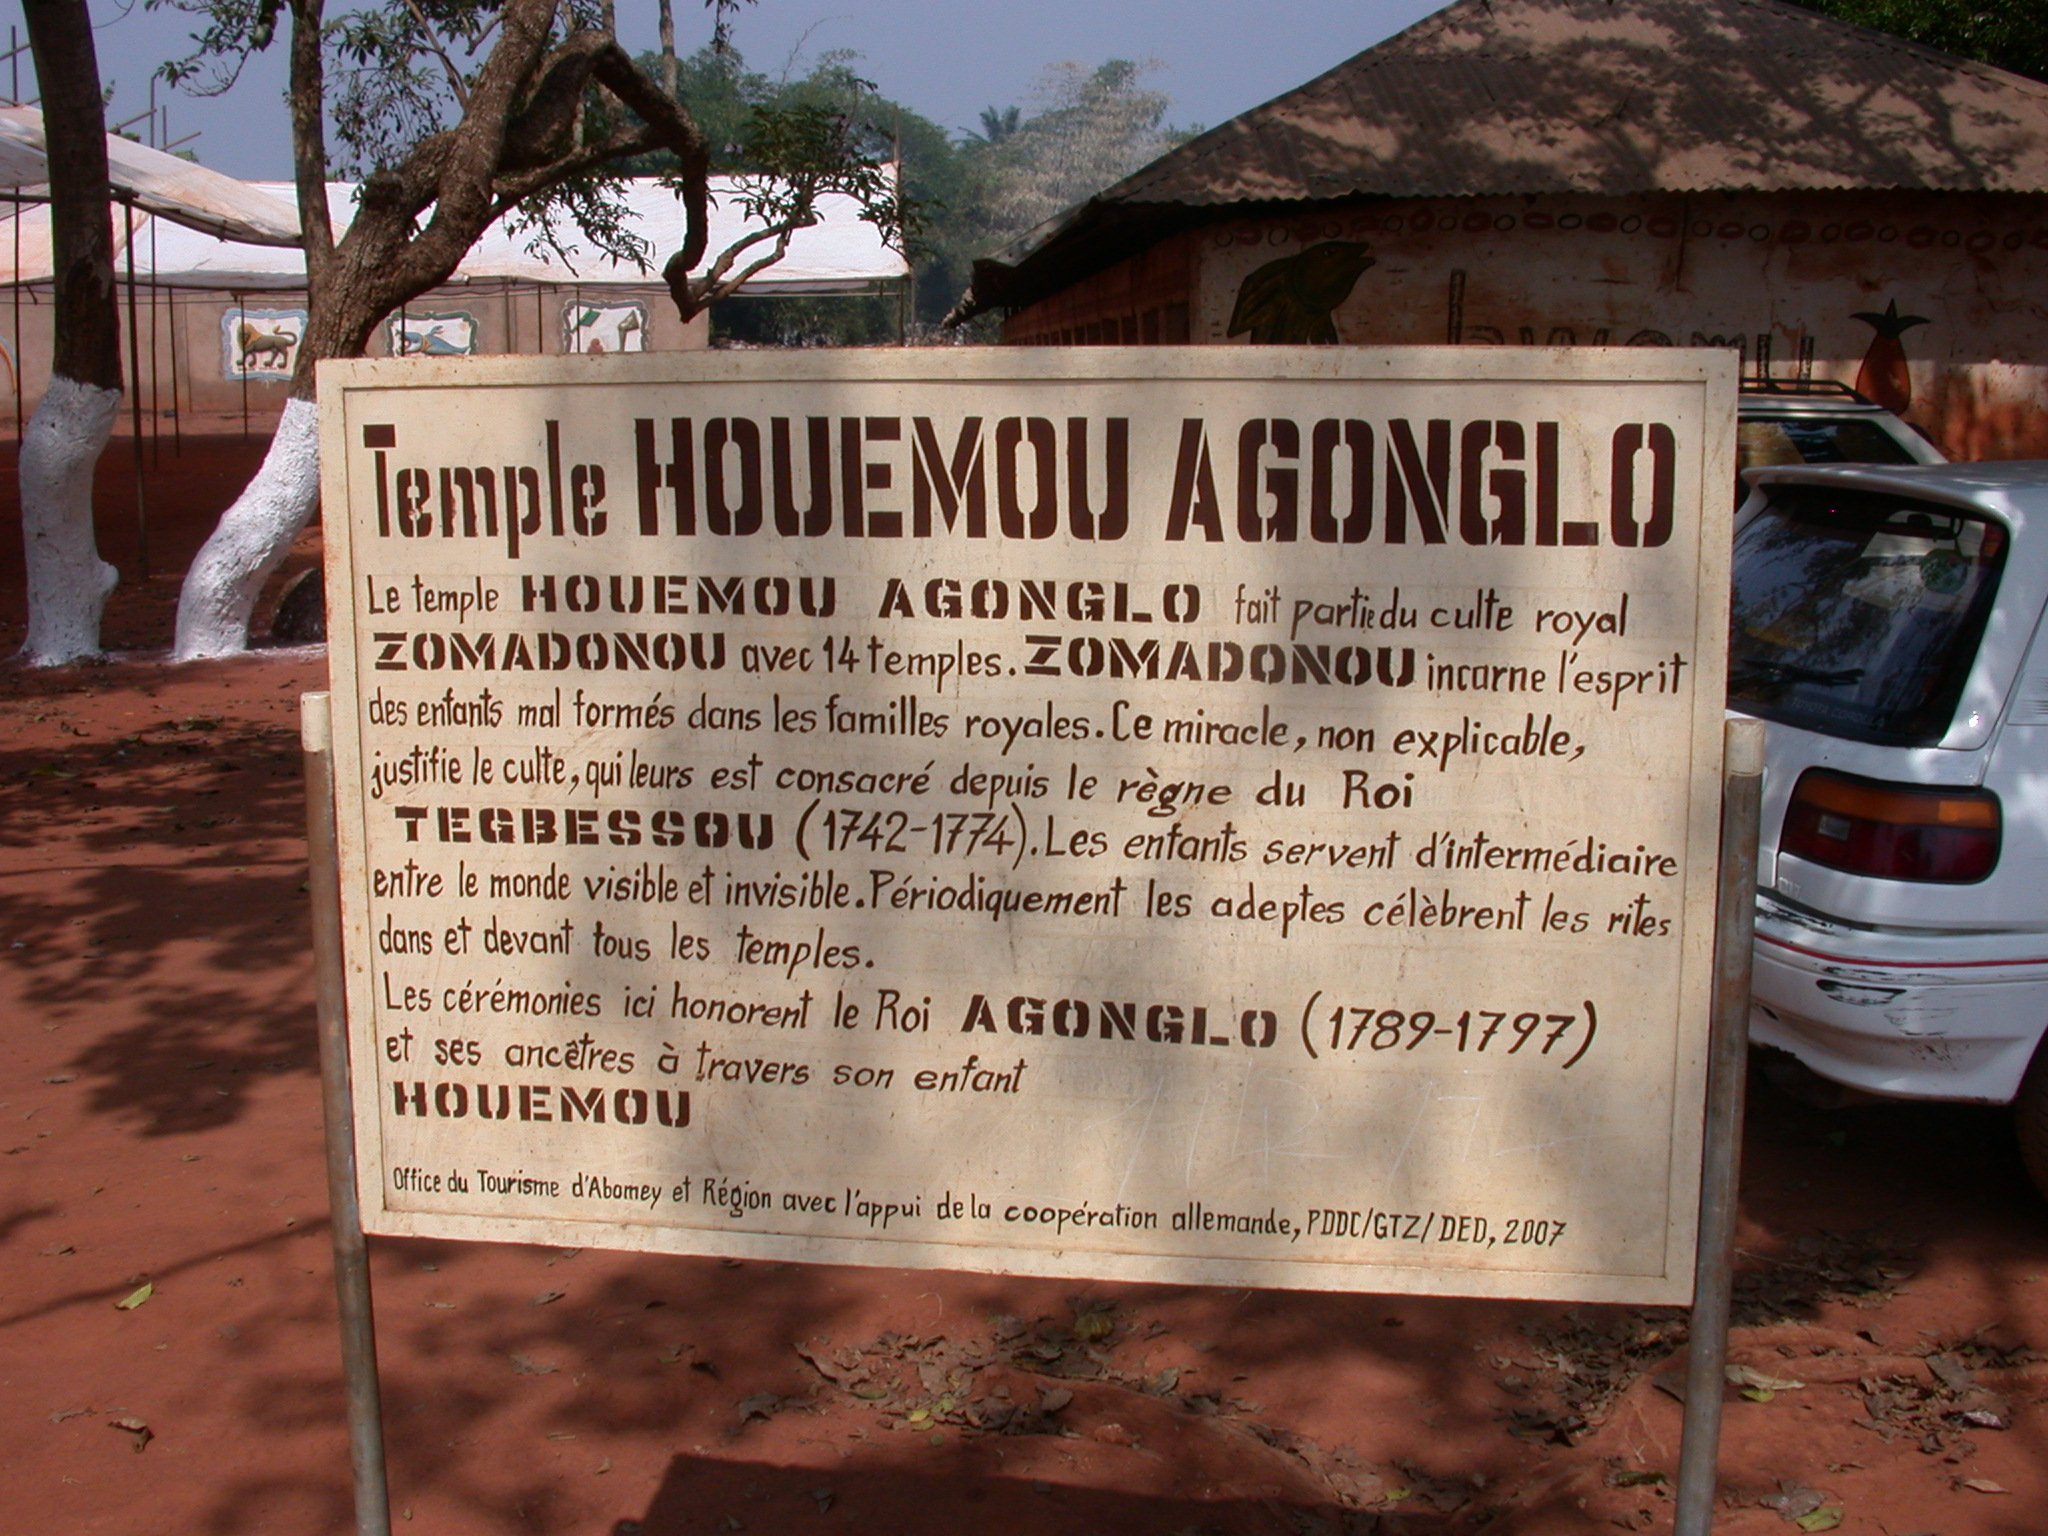 Sign for Houemou Agonglo Temple, Abomey, Benin